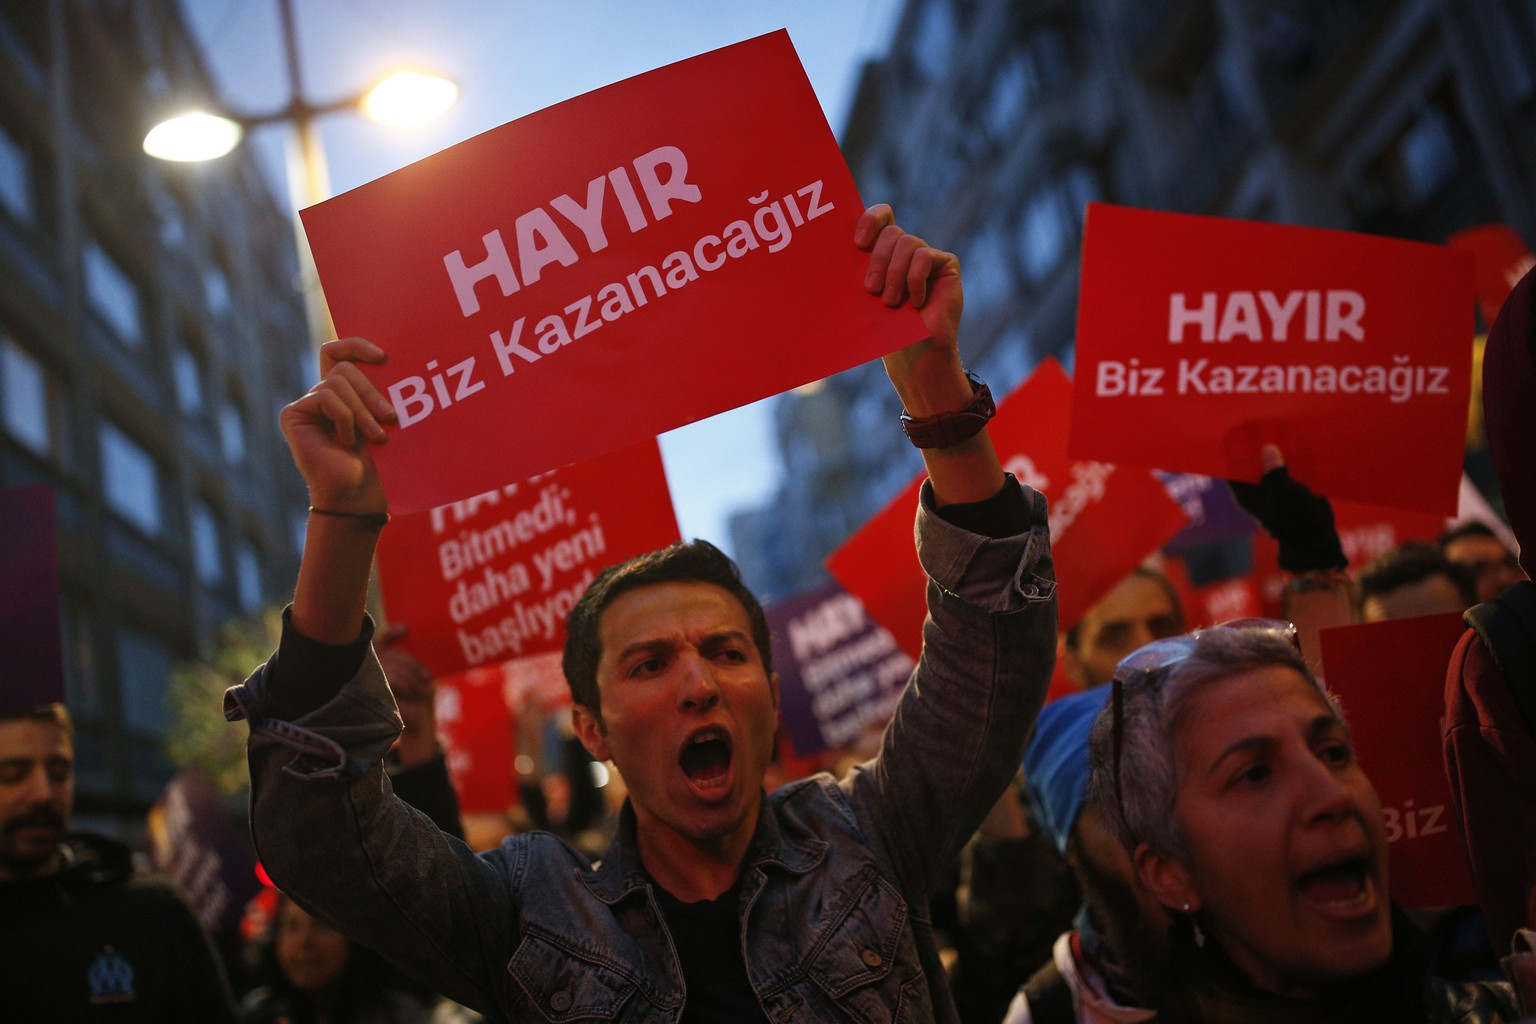 Supporters of the 'no' vote protest in Istanbul, against the referendum outcome, Monday, April 17, 2017. The placards reads in Turkish: 'No we will win'. Turkey's main opposition party urged the country's electoral board Monday to cancel the results of a landmark referendum that granted sweeping new powers to Erdogan, citing what it called substantial voting irregularities. (AP Photo/Emrah Gurel)